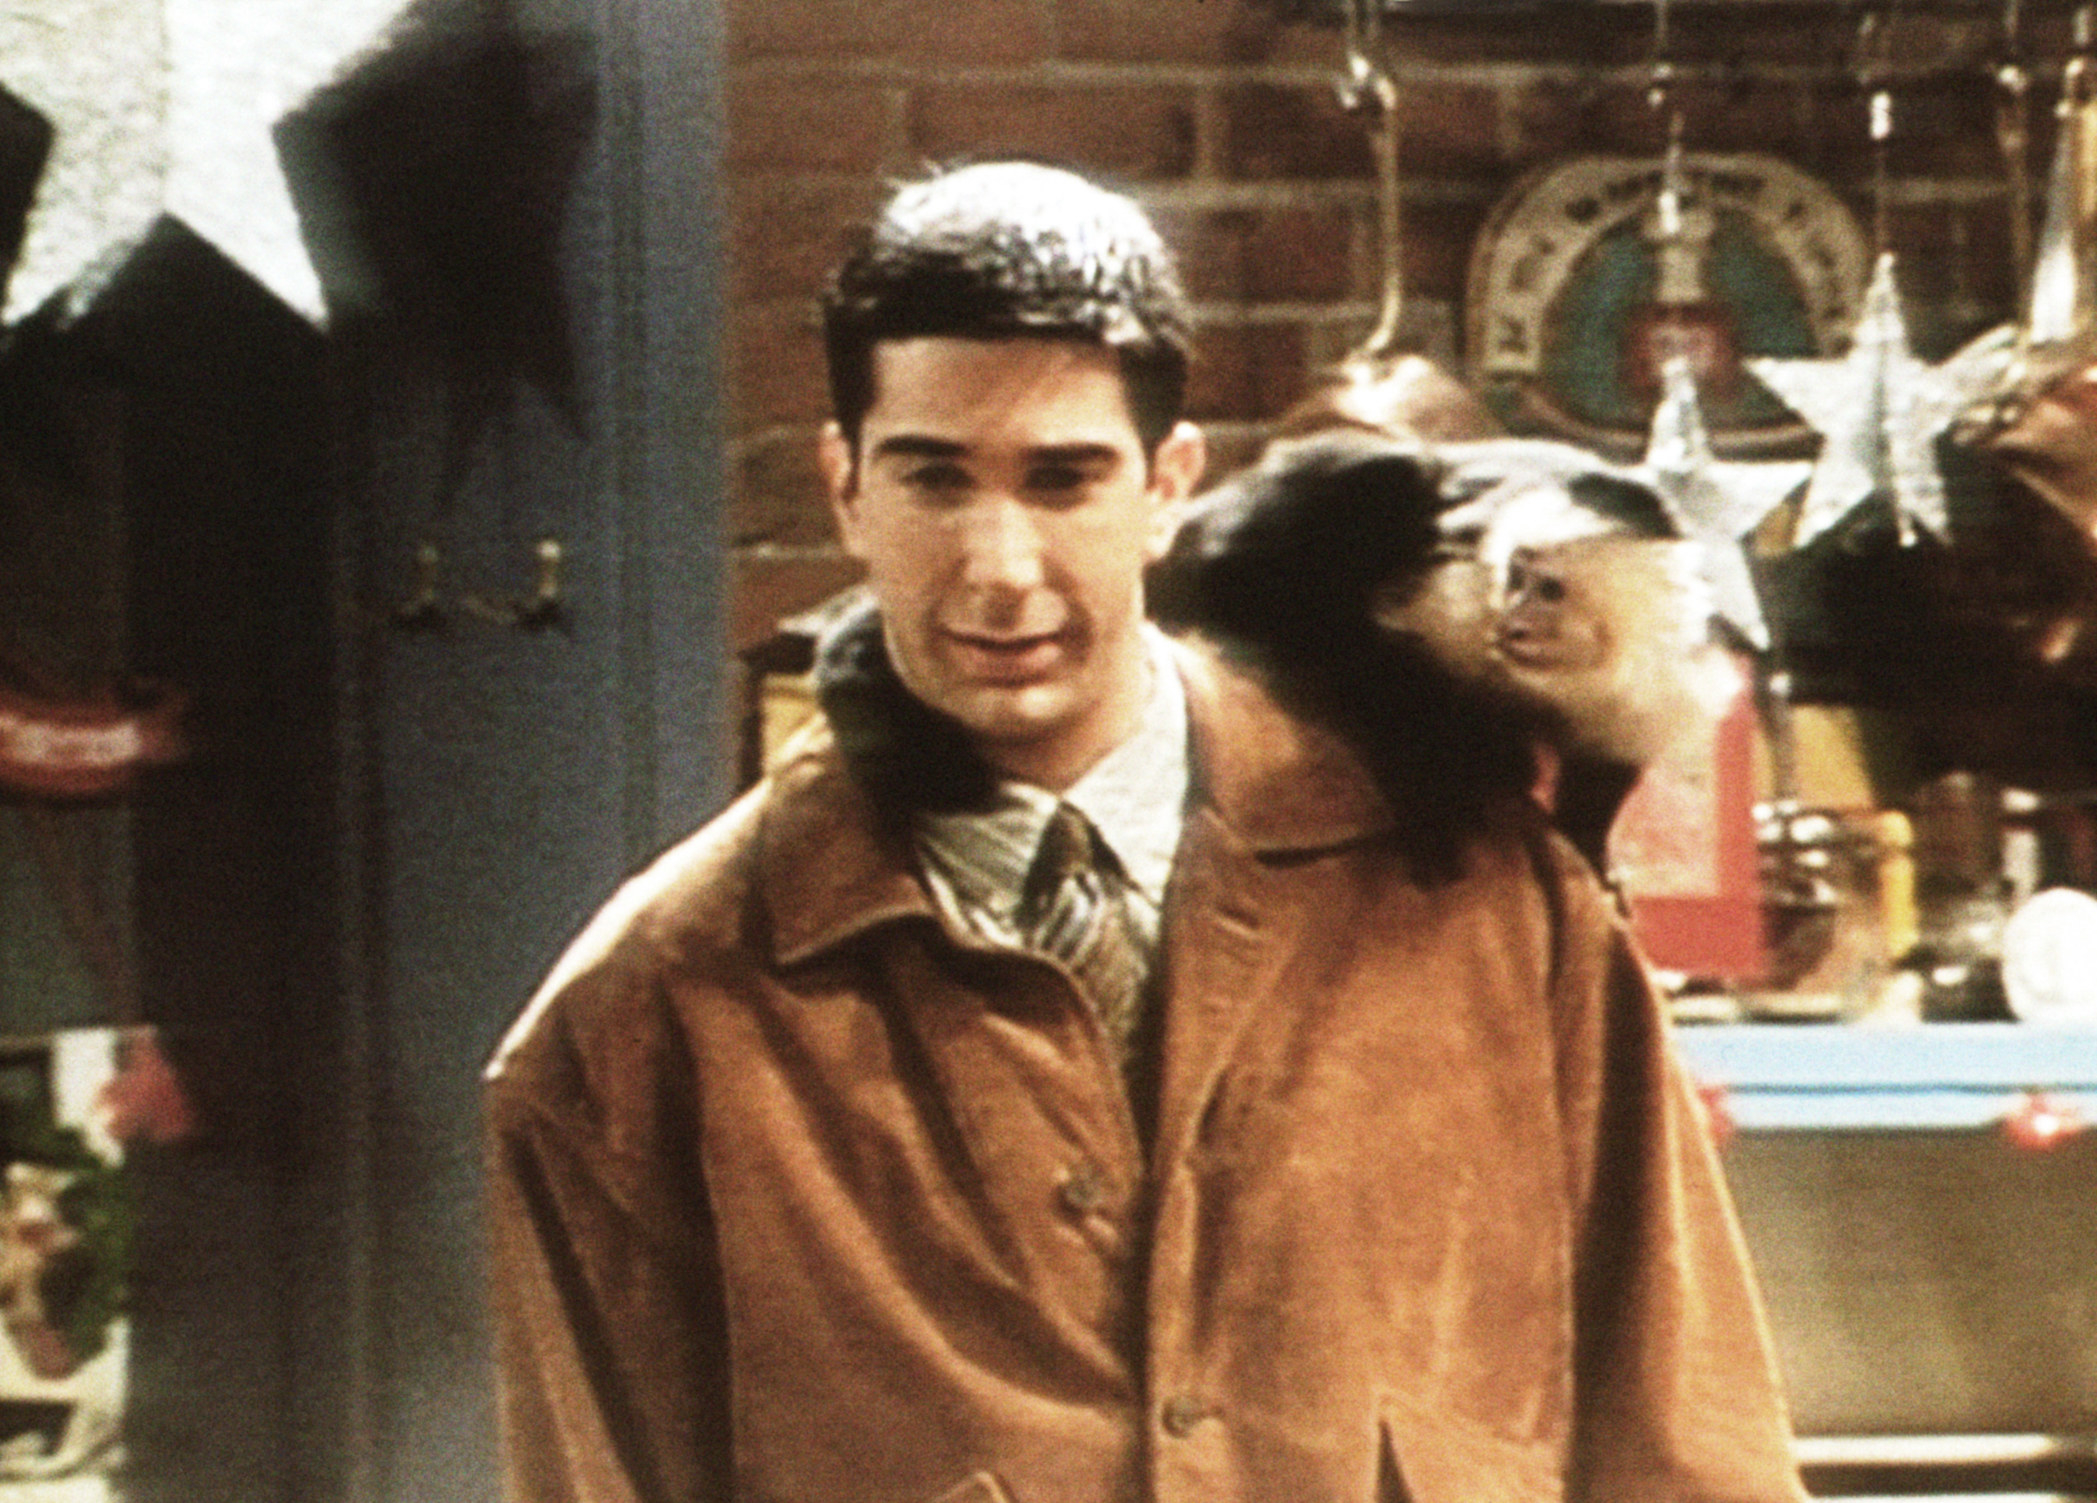 Ross with monkey on his shoulder